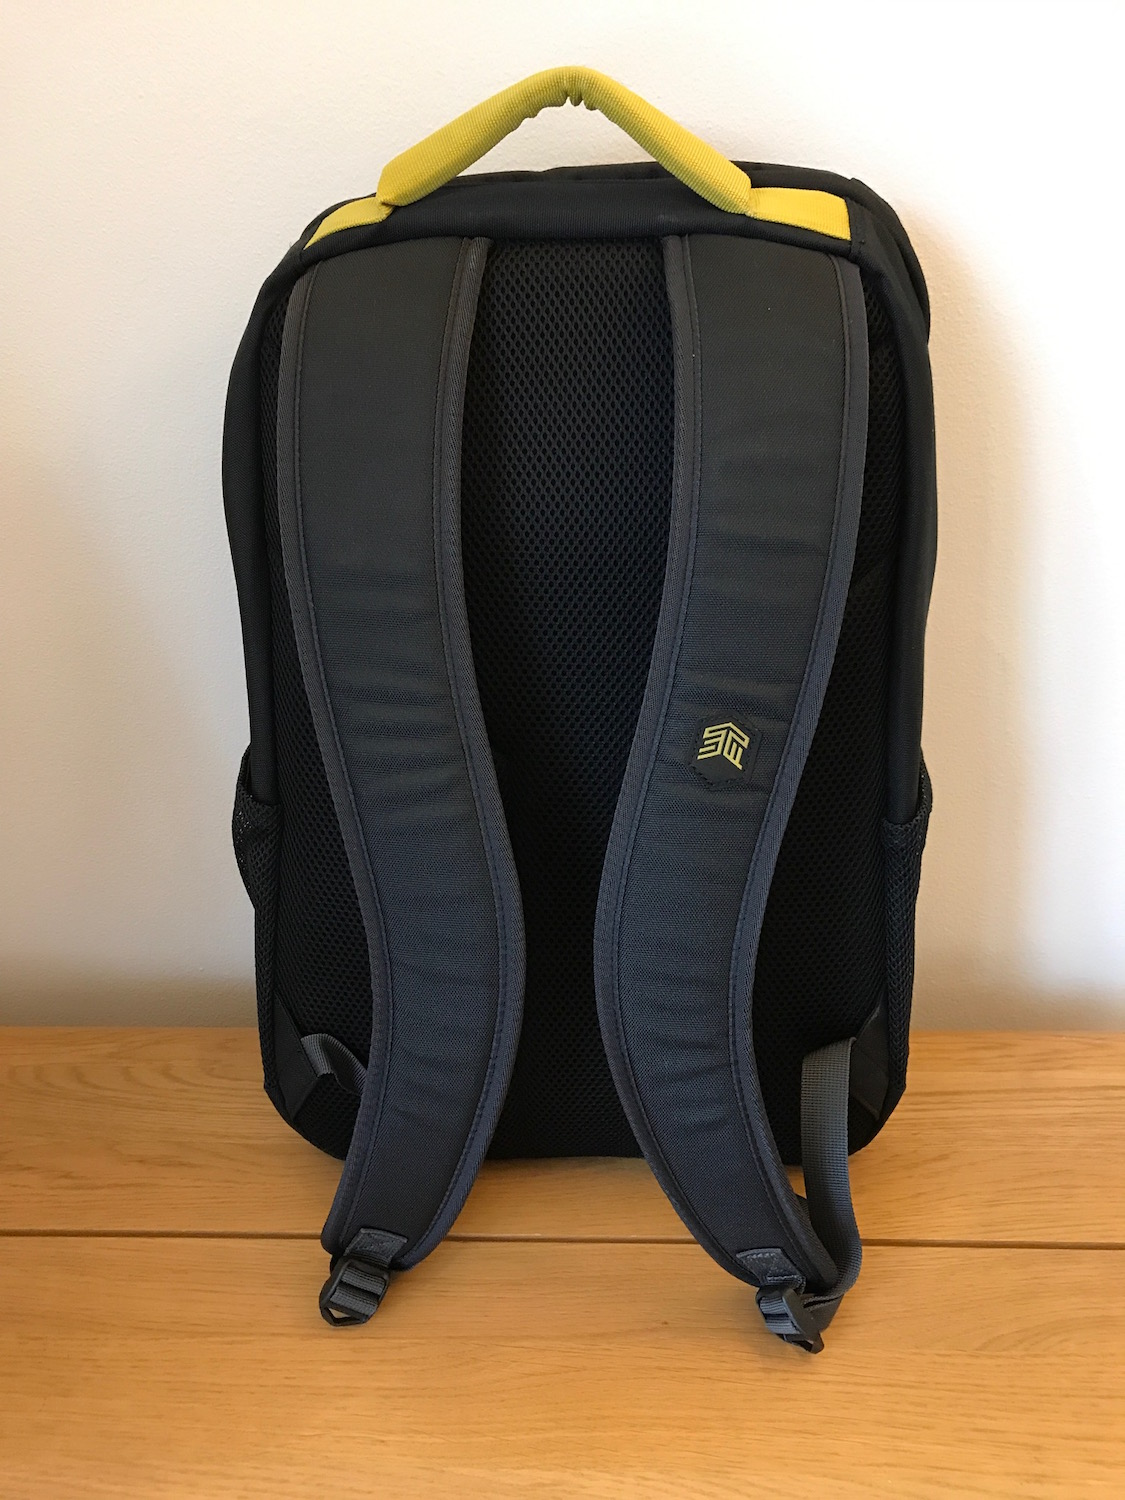 STM Saga backpack - back